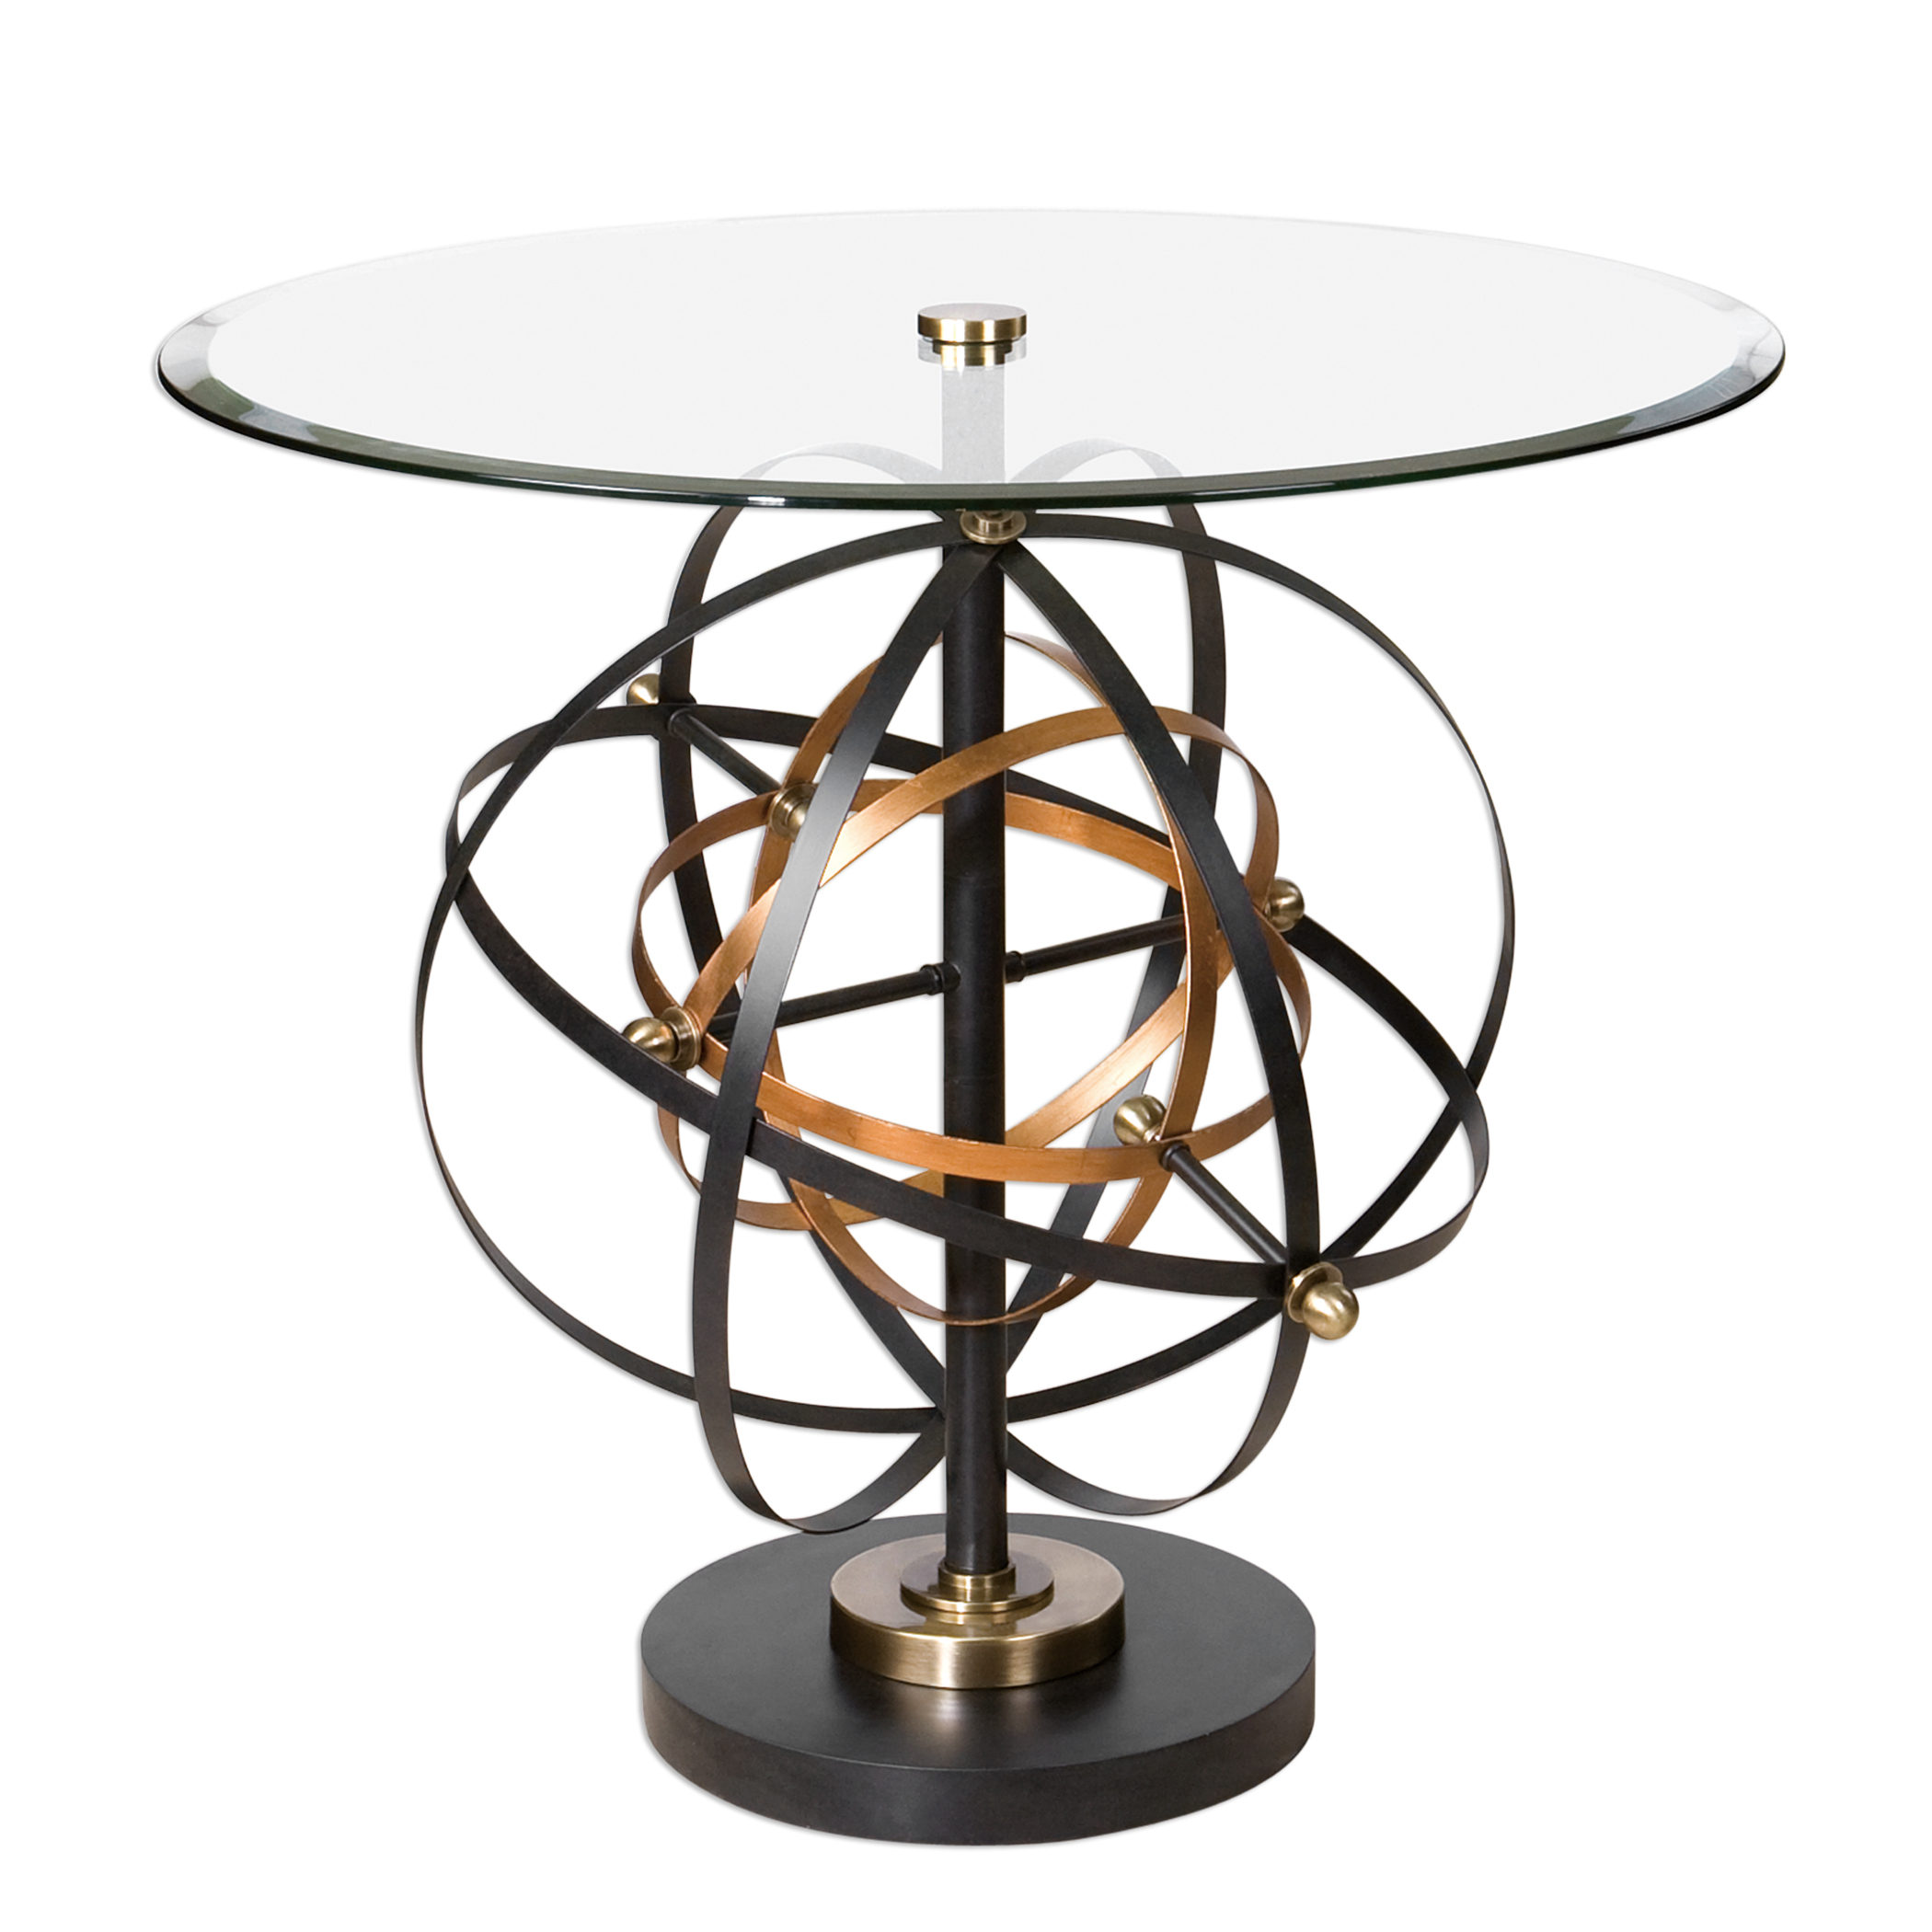 Uttermost Accent Furniture Colman Sphere Accent Table - Item Number: 24627